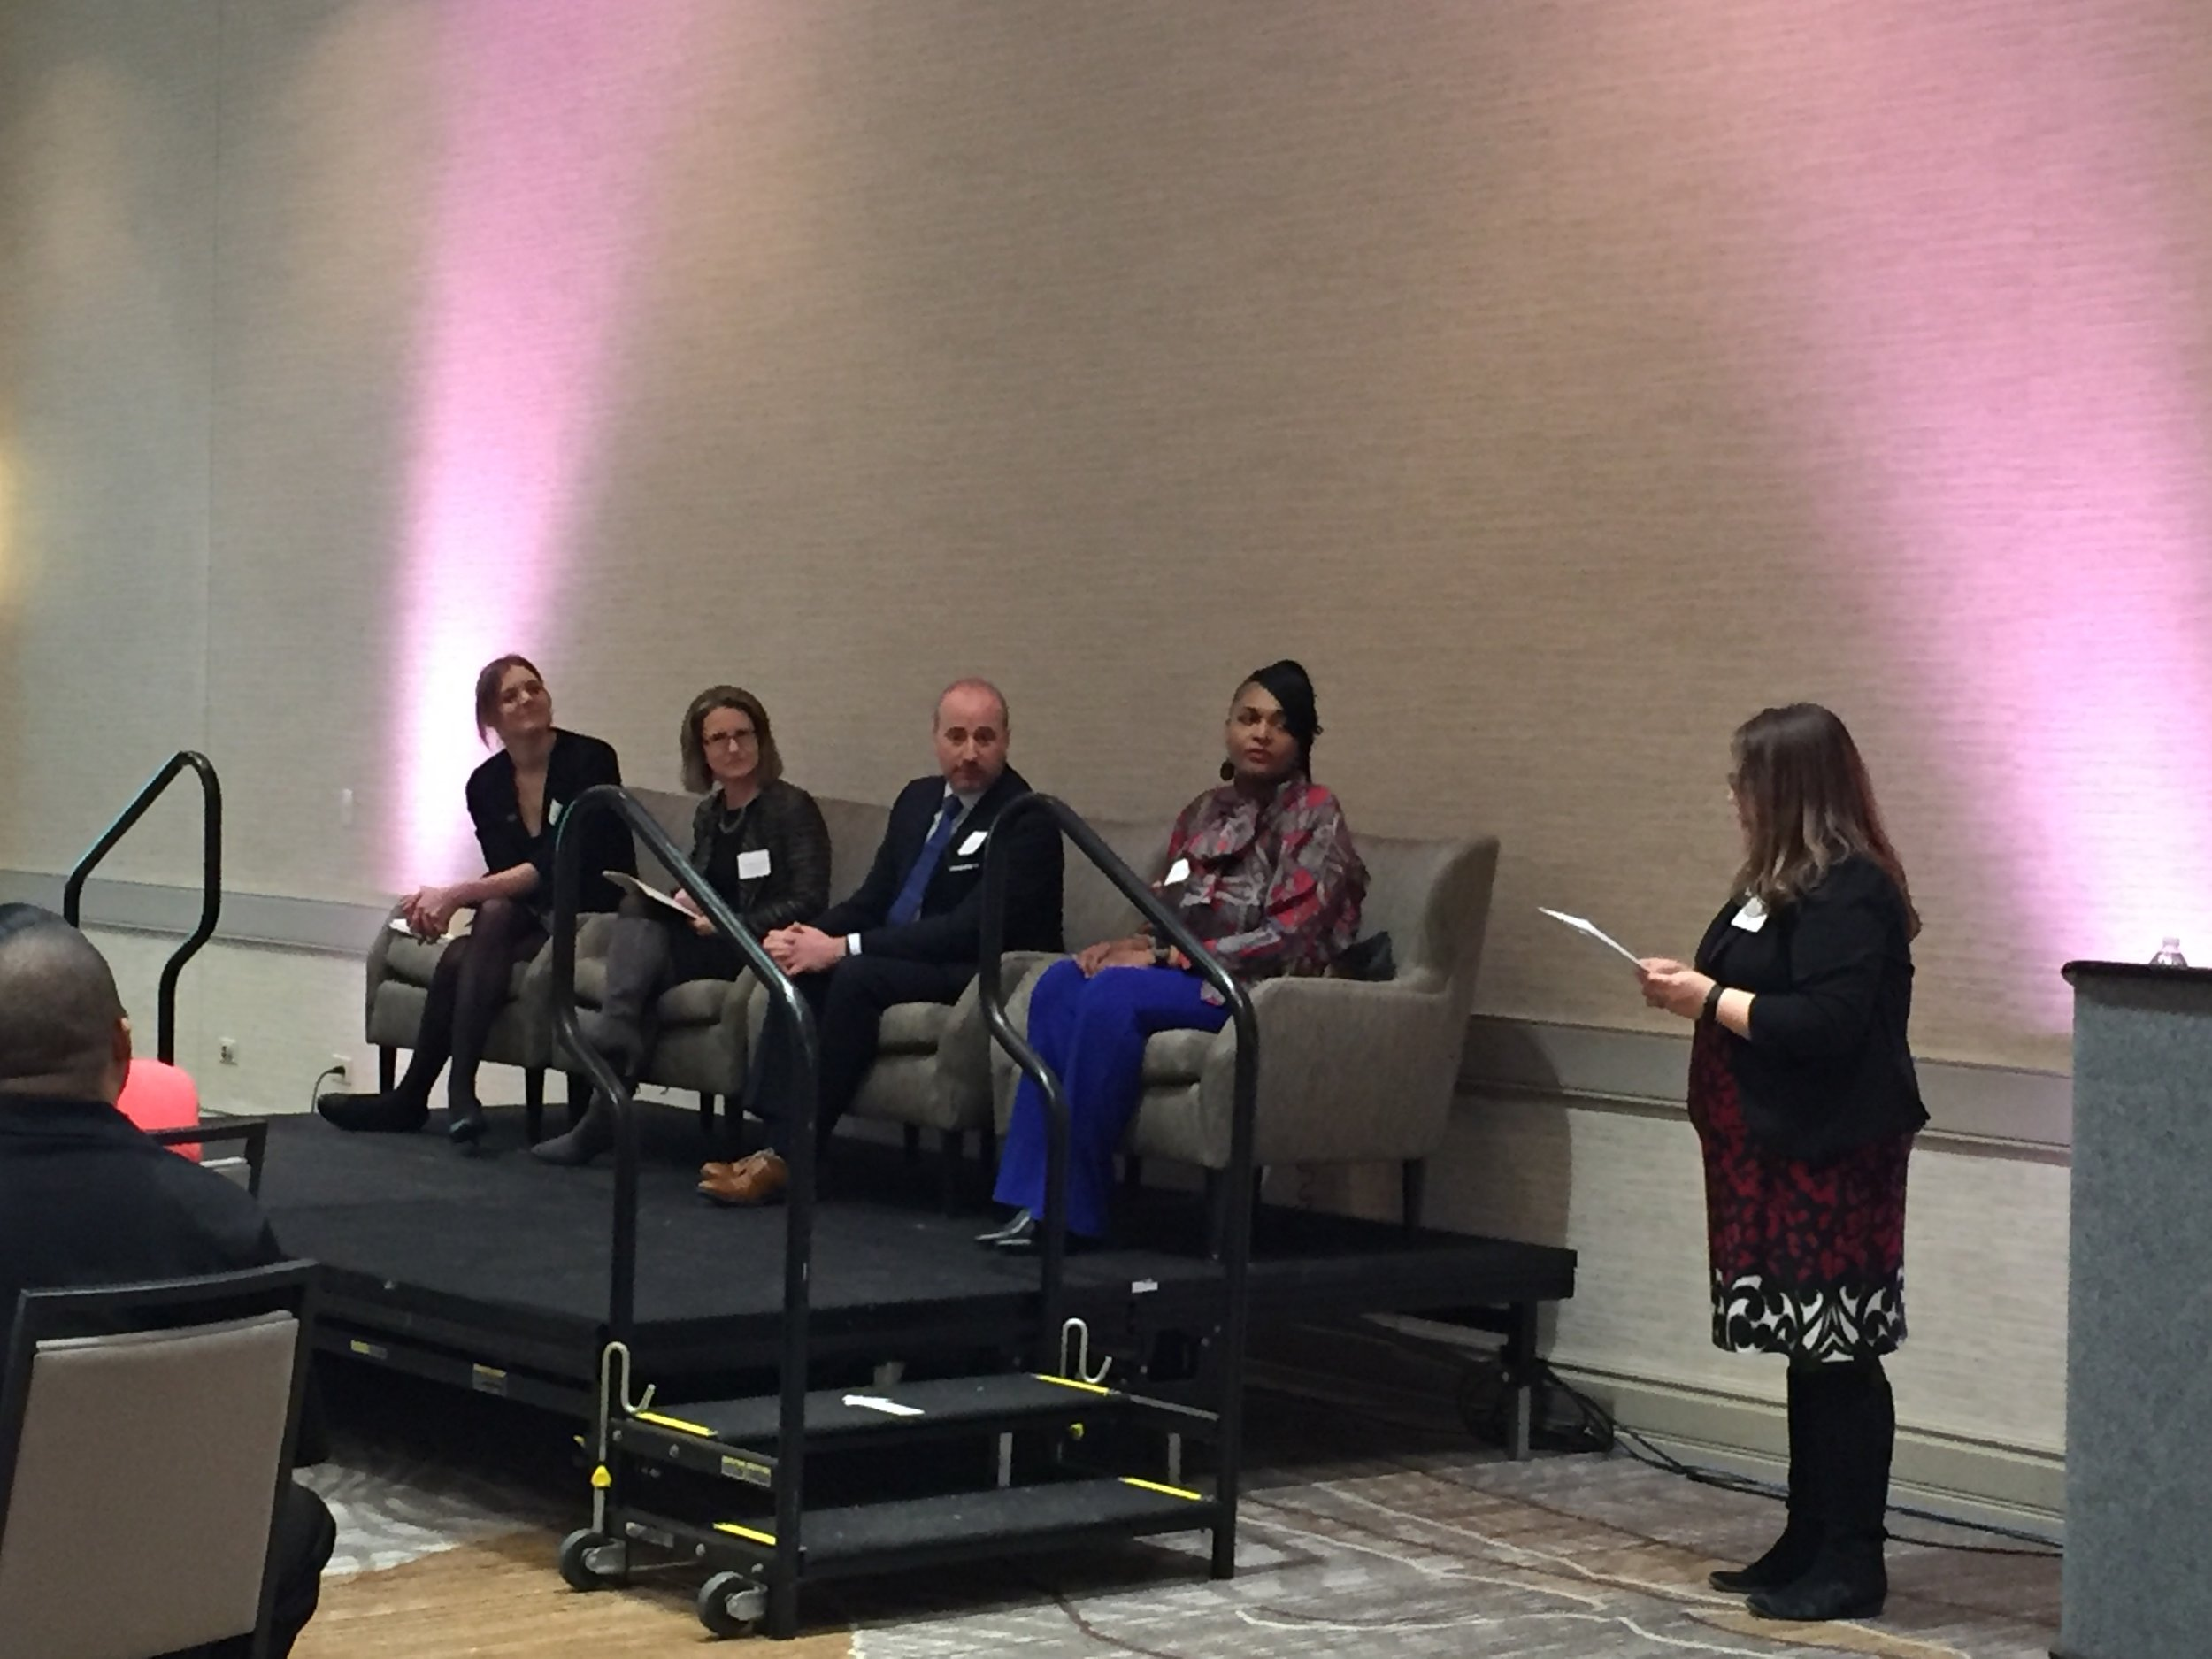 Emily Farr speaks at the Chicago Urban League's  Women's Empowerment Summit  - Emily was honored to speak at the third annual Women's Empowerment Summit in Burr RIdge, IL on March 16, 2018.